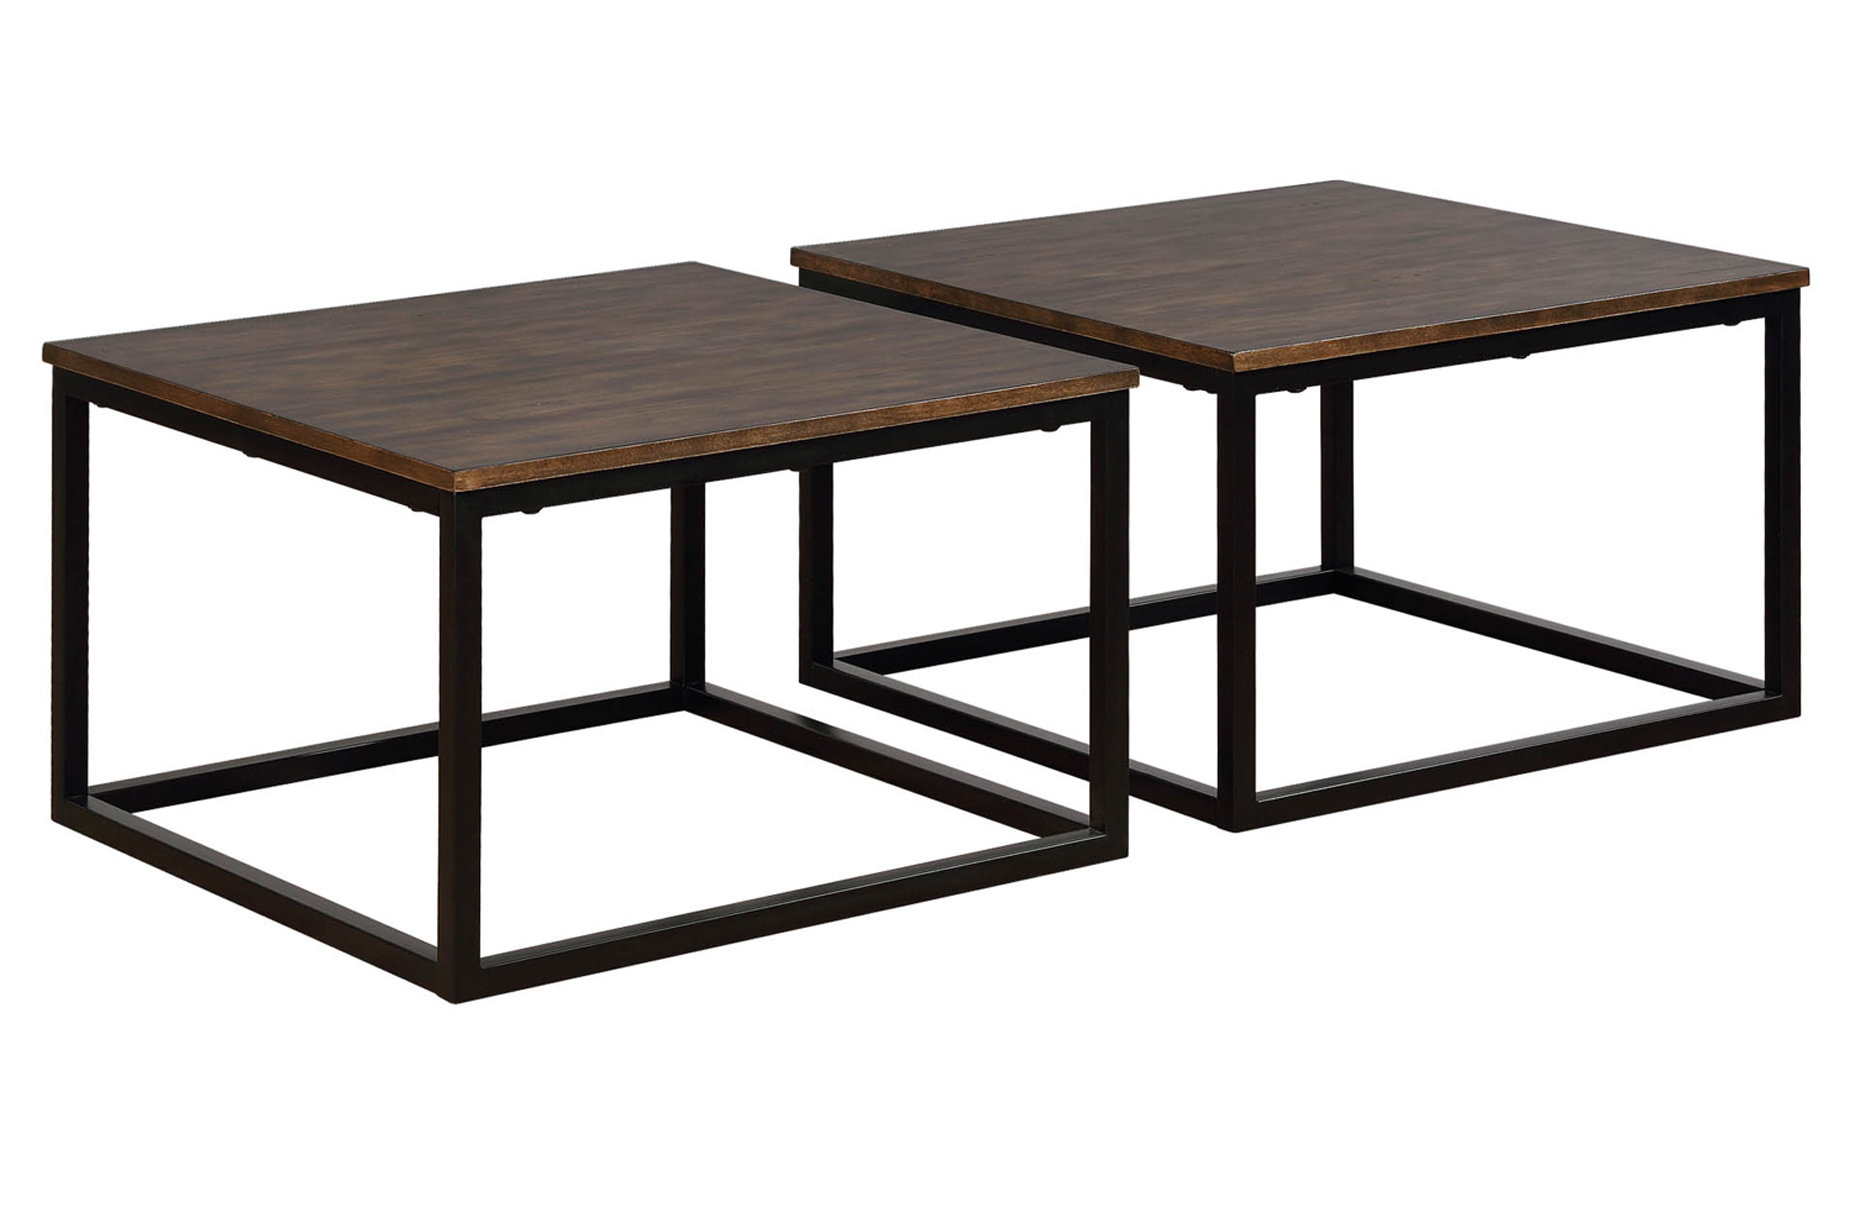 Gracie Oaks Hensley 2 Piece Square Coffee Table Set Wayfair with measurements 1860 X 1220